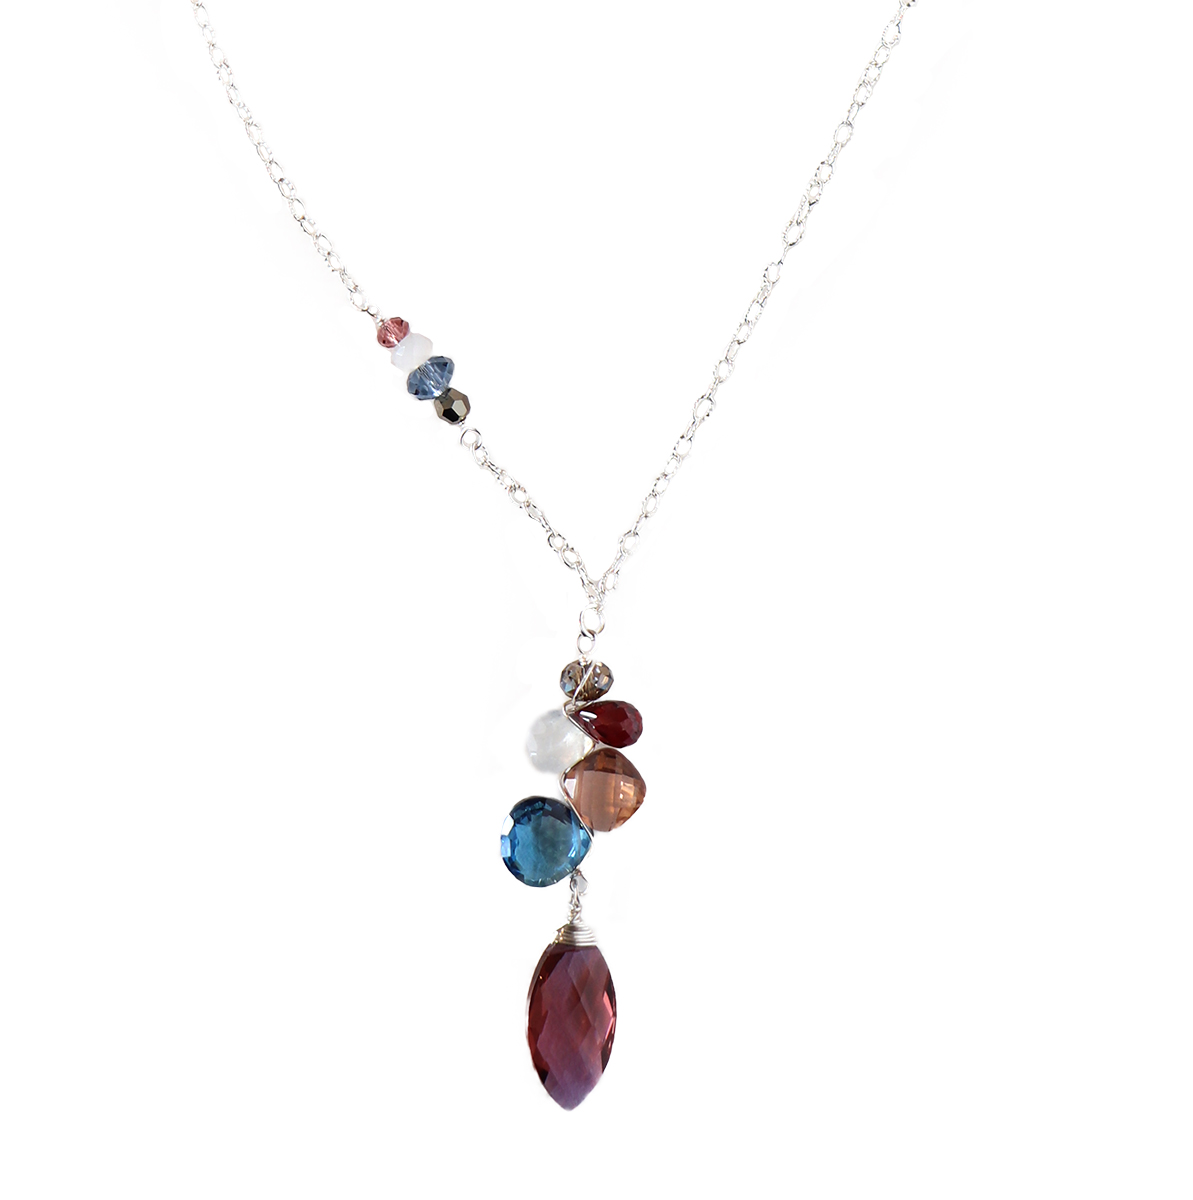 MARSALA QTZ MARQUEE W/ MIXED GEMSTONE NECKLACE, ANNA BALKAN